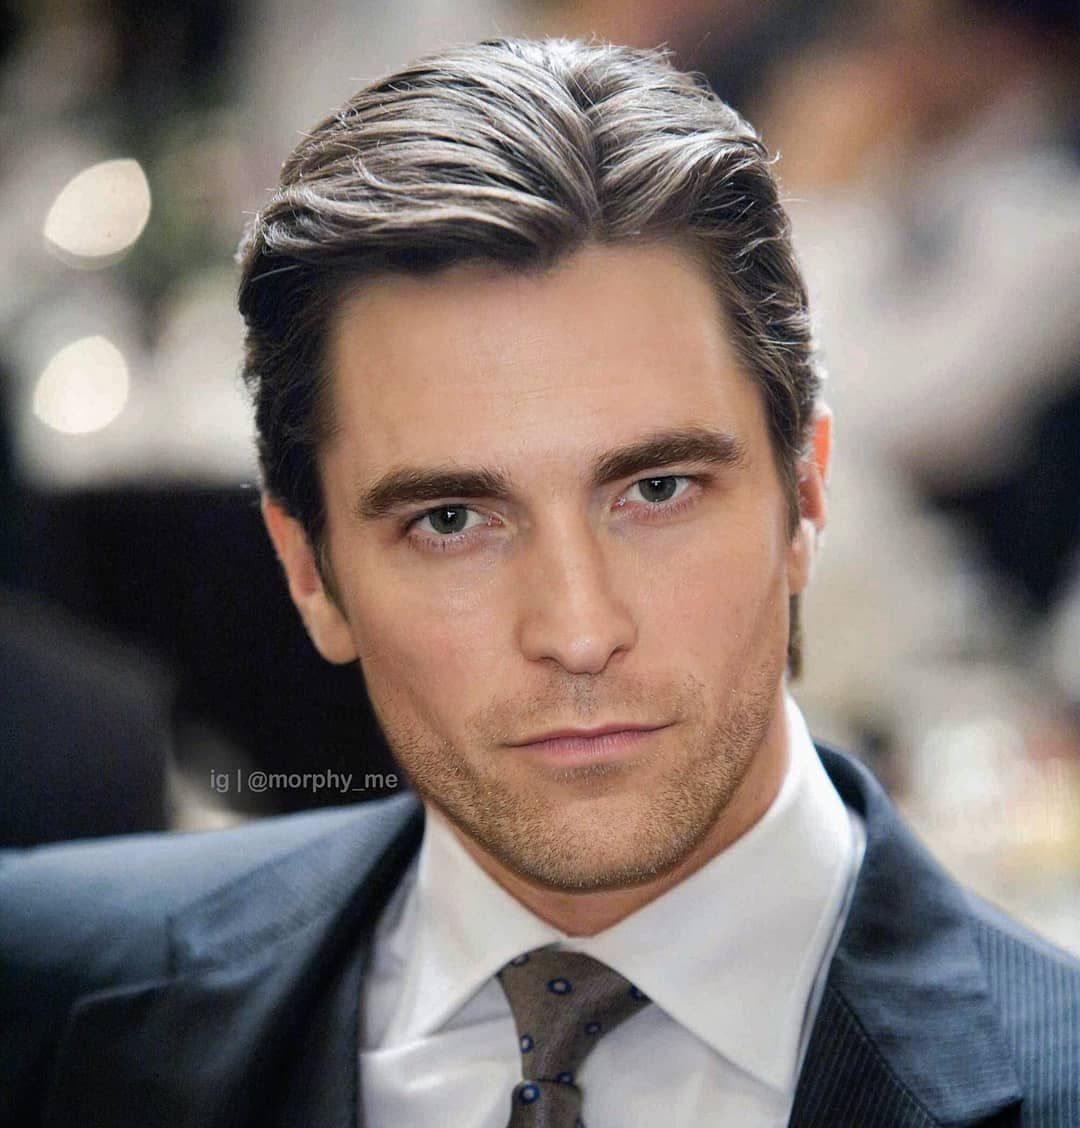 Morphy Mixing Faces On Instagram Thoughts On Robert Pattinson As Batman 791 Christian Bale Robert Patti Robert Pattinson Christian Bale Avengers Cast